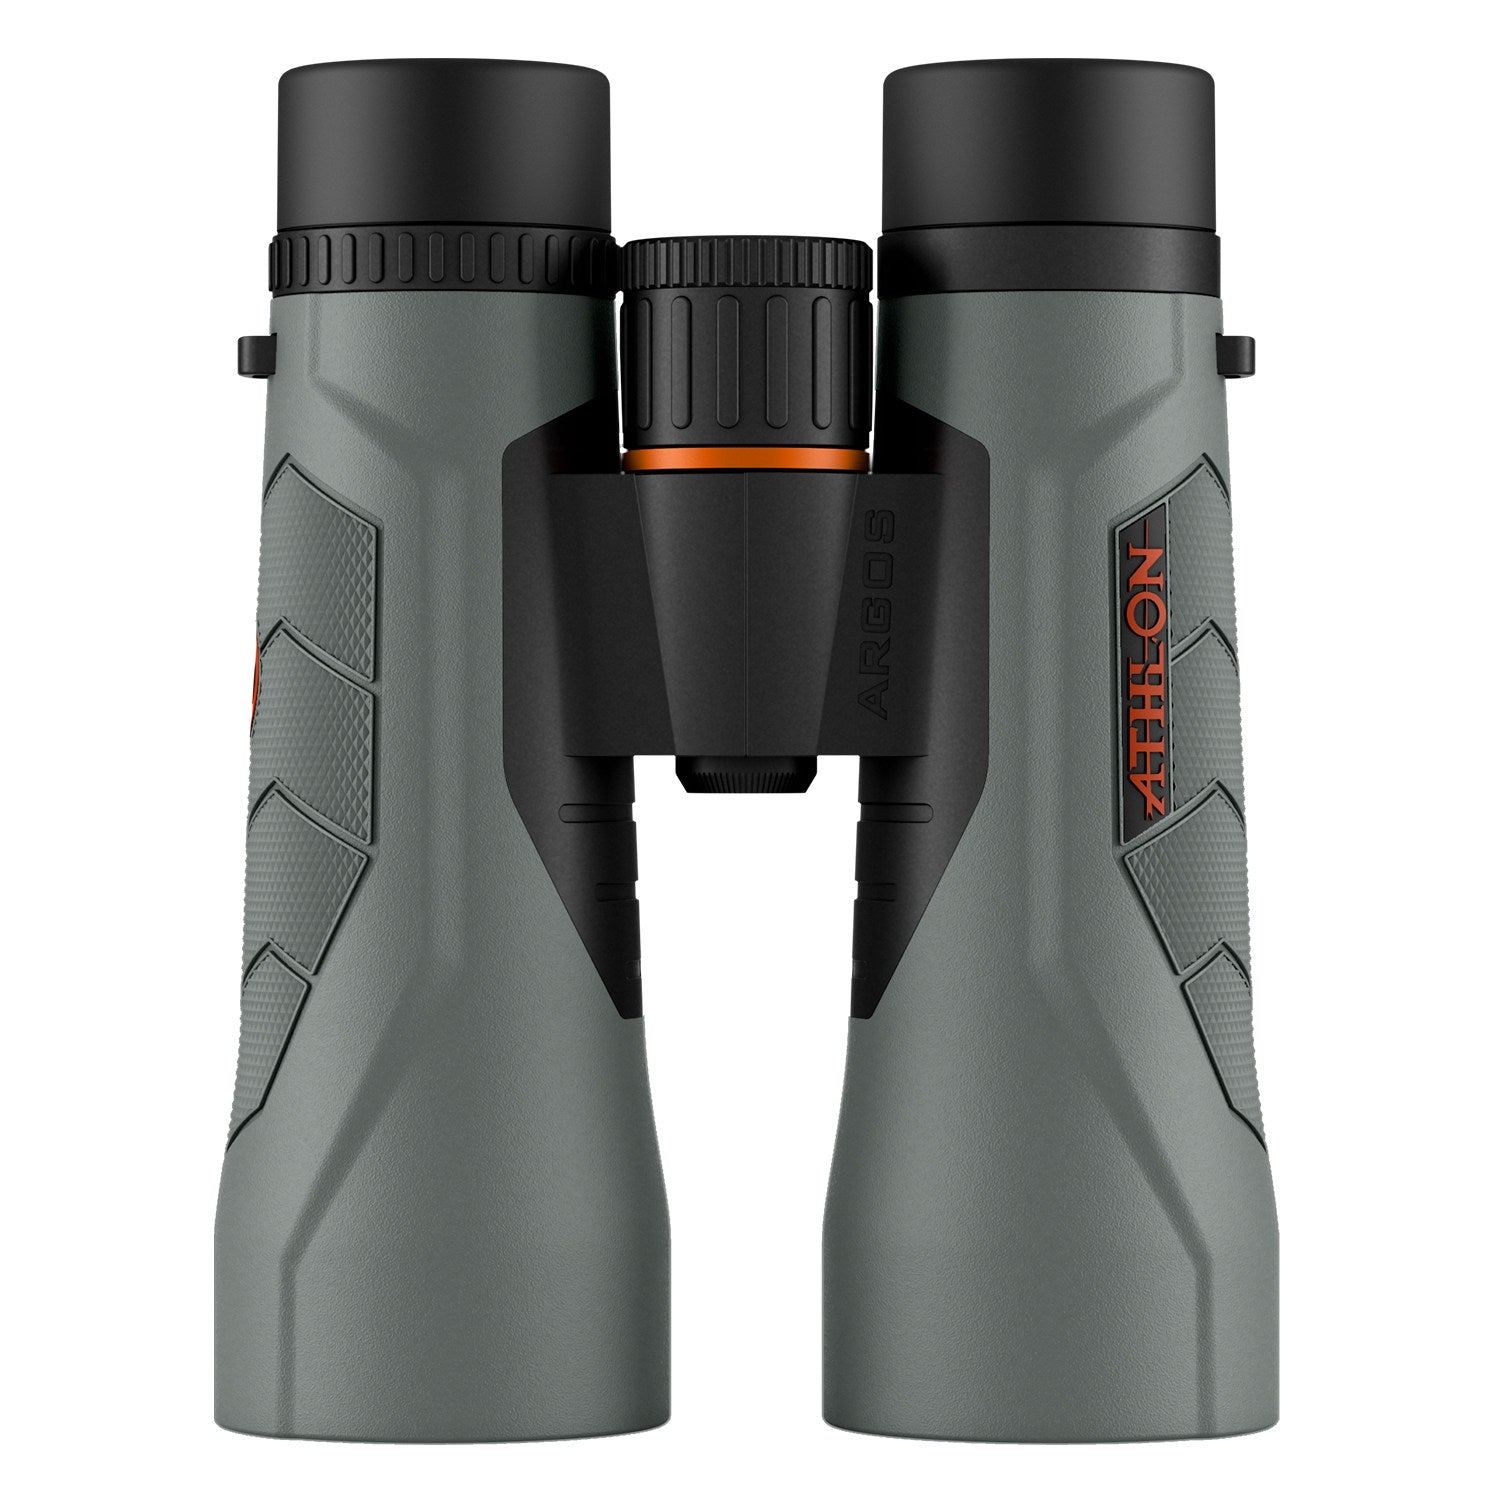 Athlon Optics Argos G2 10×50mm HD Binoculars